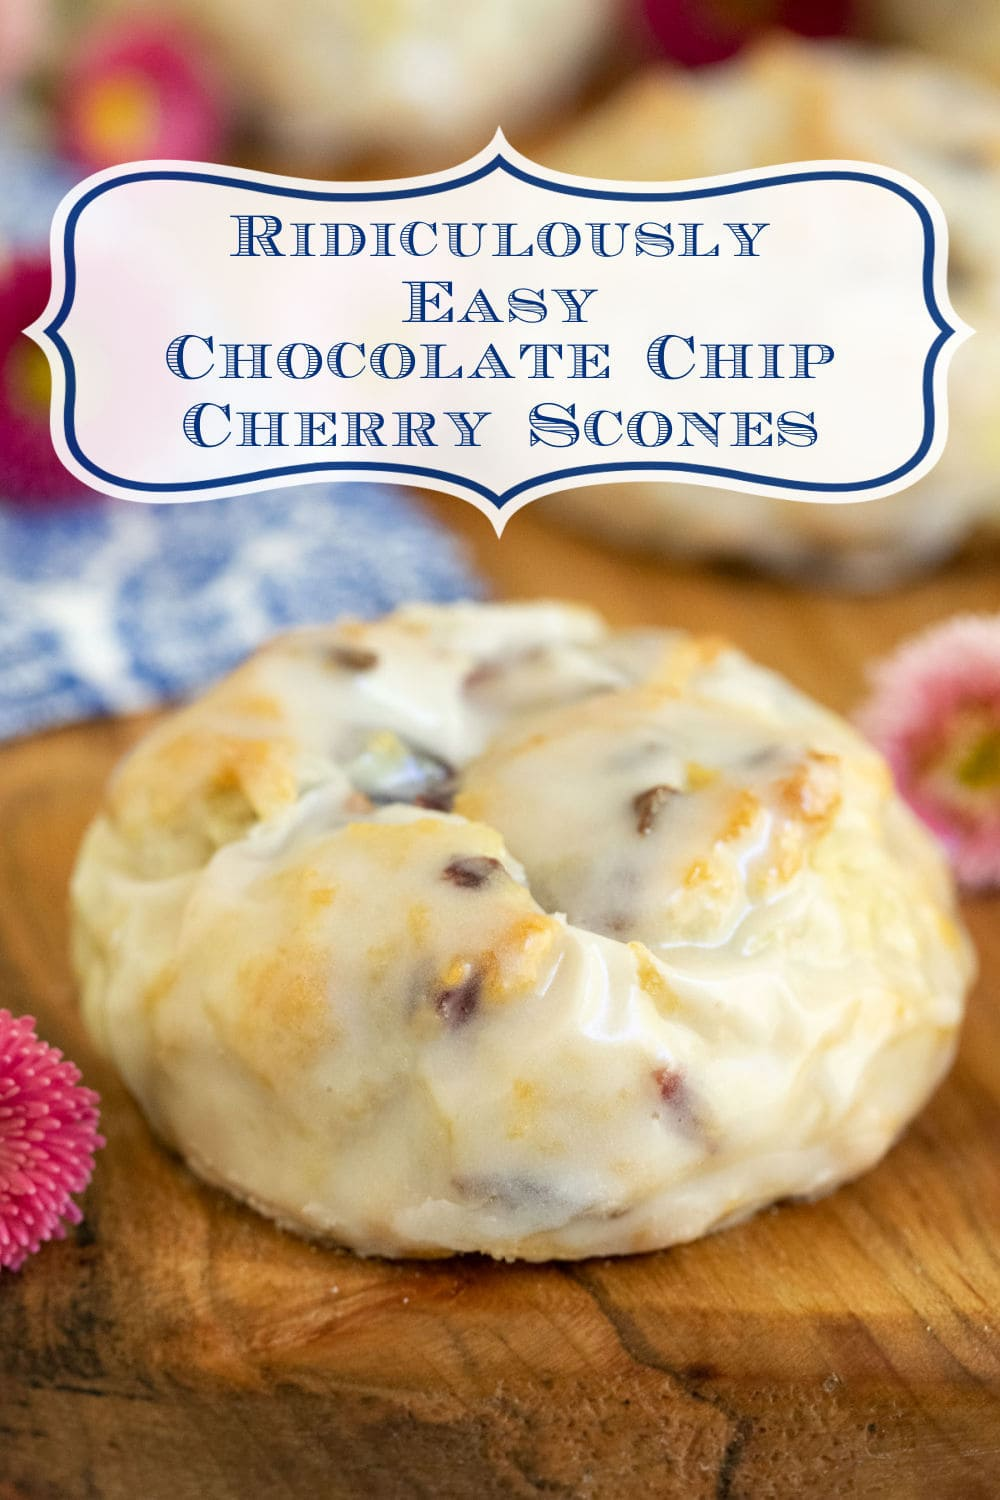 Ridiculously Easy Chocolate Chip Cherry Scones